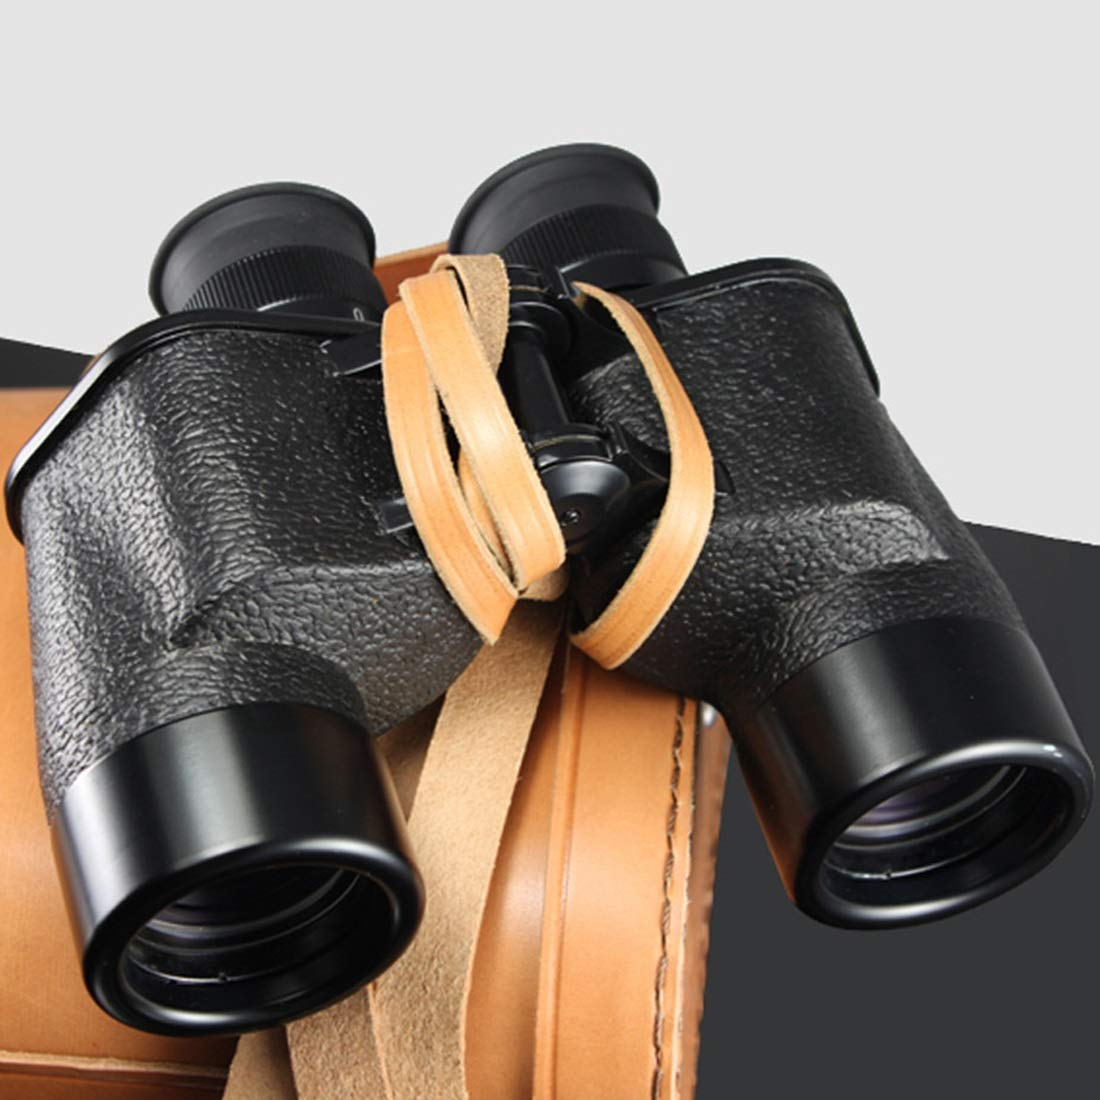 PUWEN 7x40 Binoculars for Adults with Night Vision,Compact Telescope for Bird Watching, Sports Events, Adventure and Concerts with Distance Measurement with Carring Bag ( Color : Black )